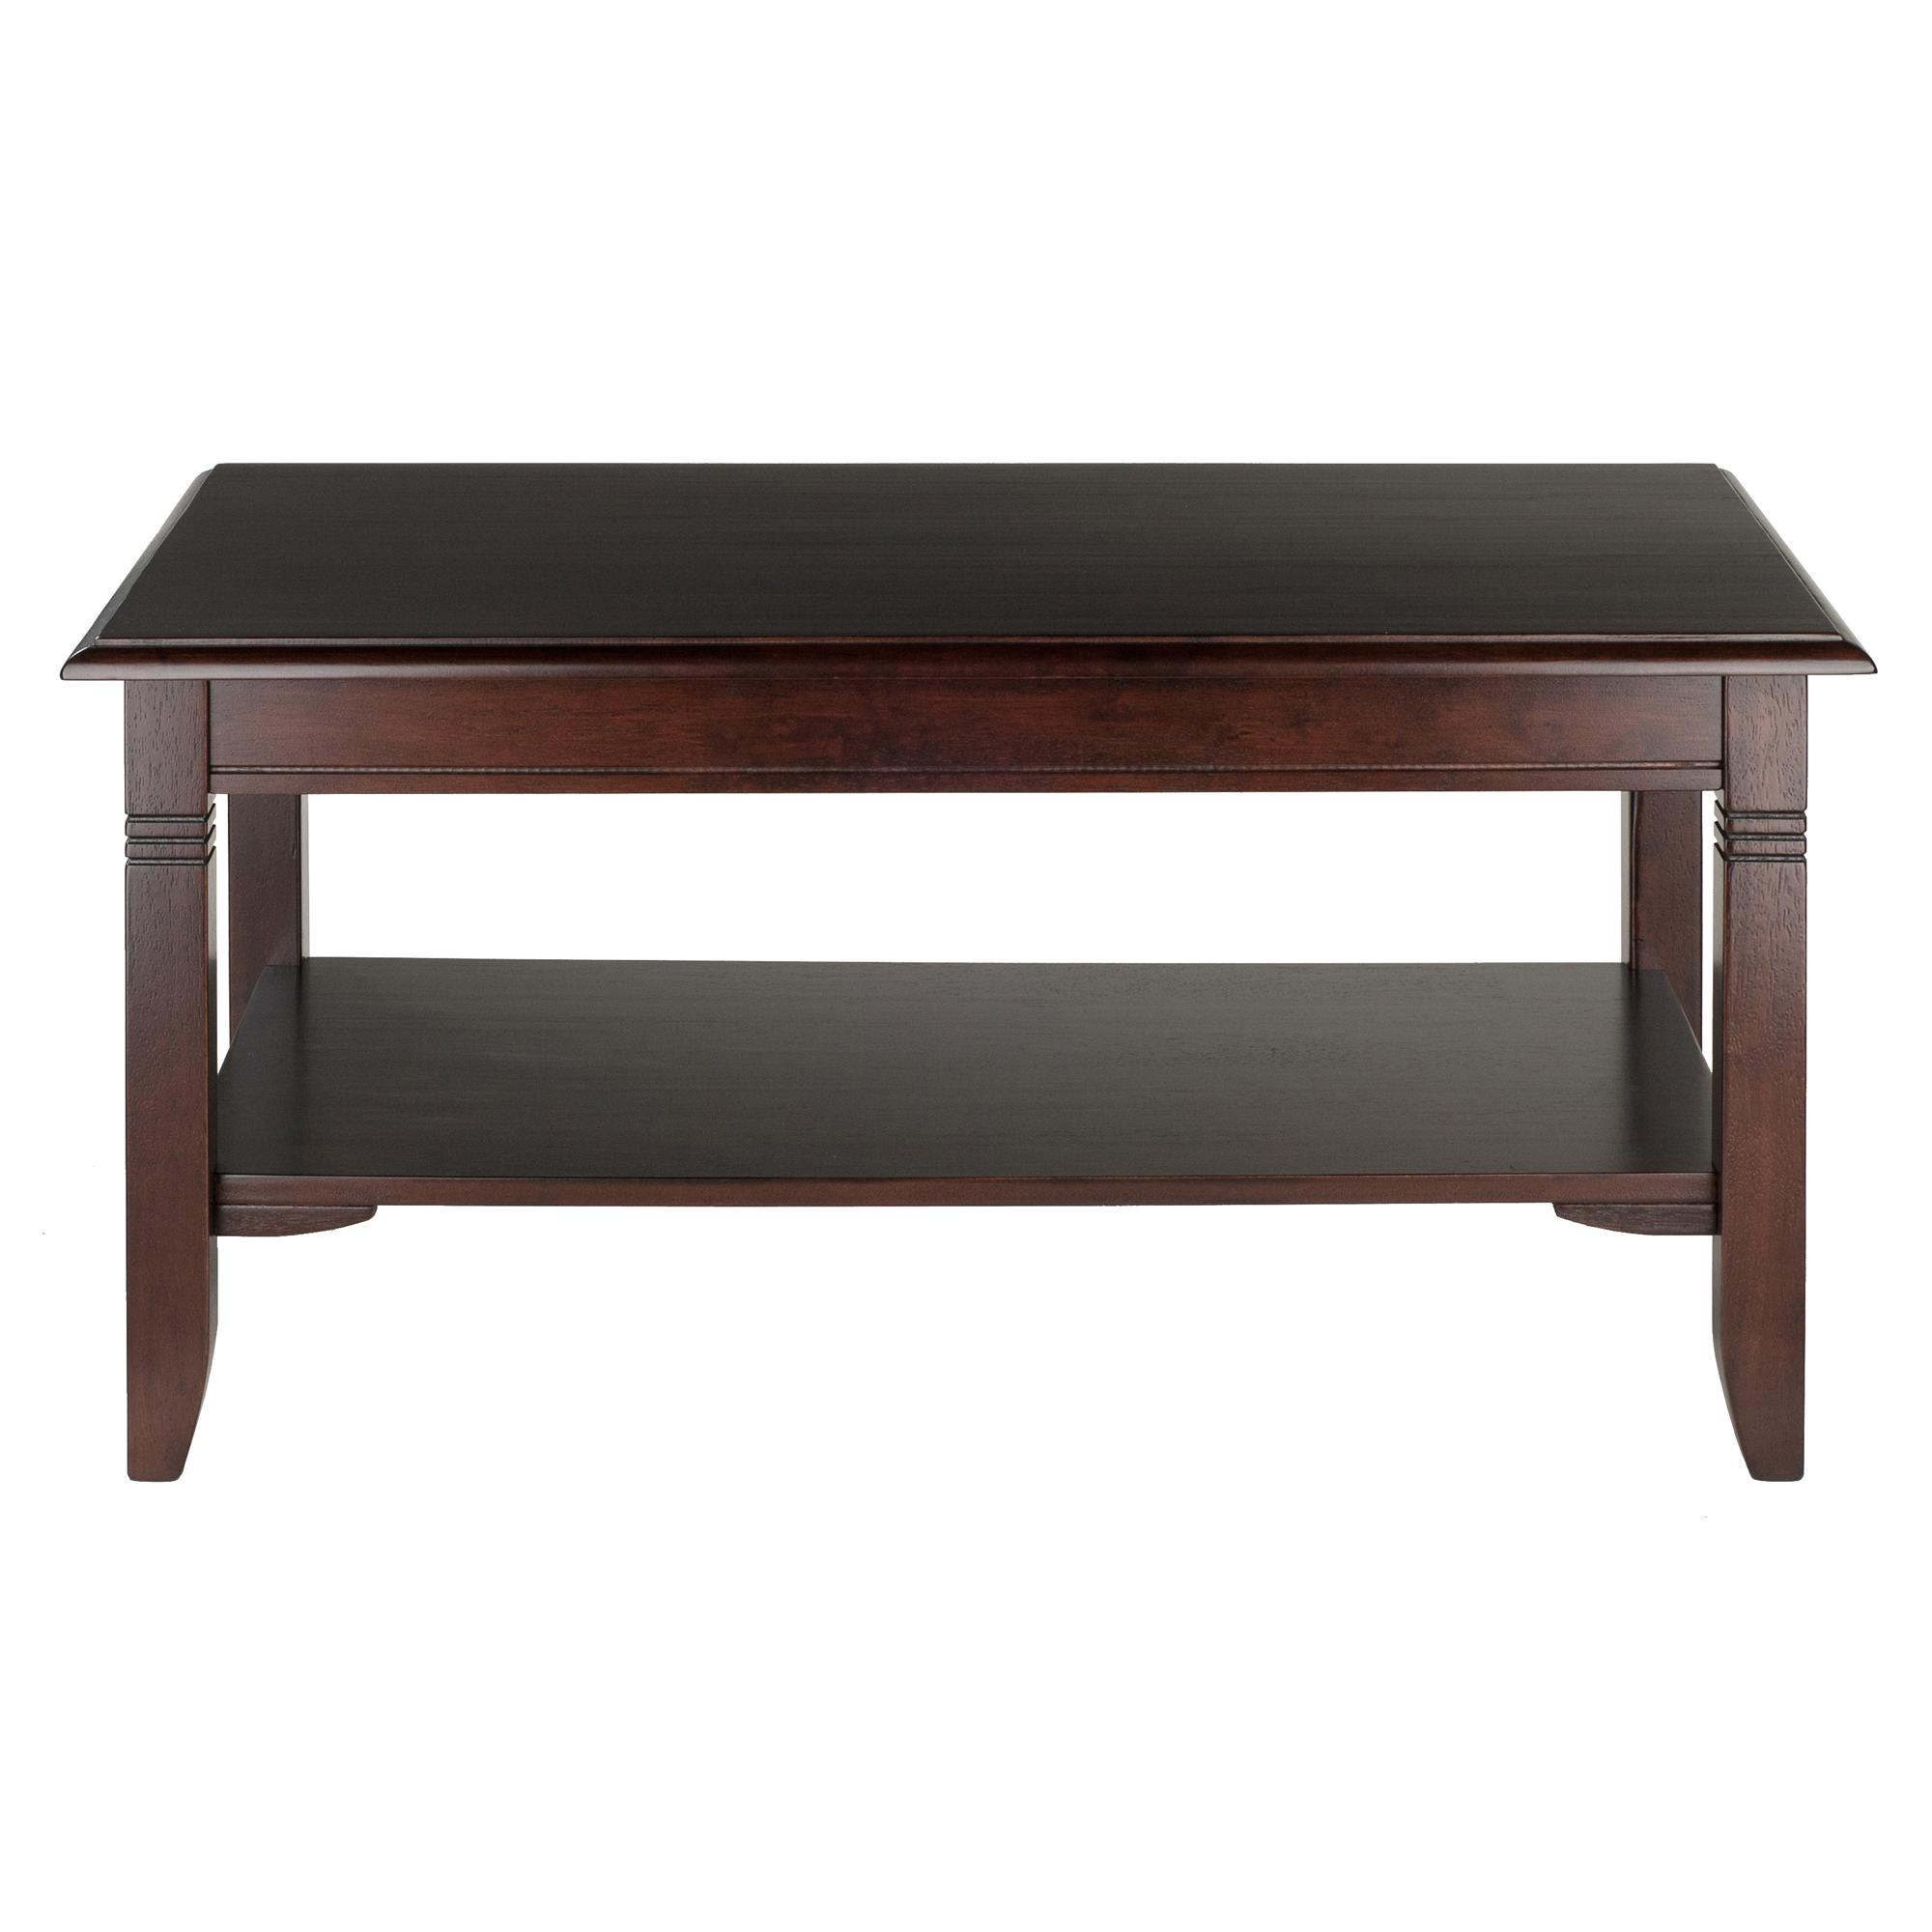 Winsome wood nolan coffee table kitchen dining for Coffee tables on amazon